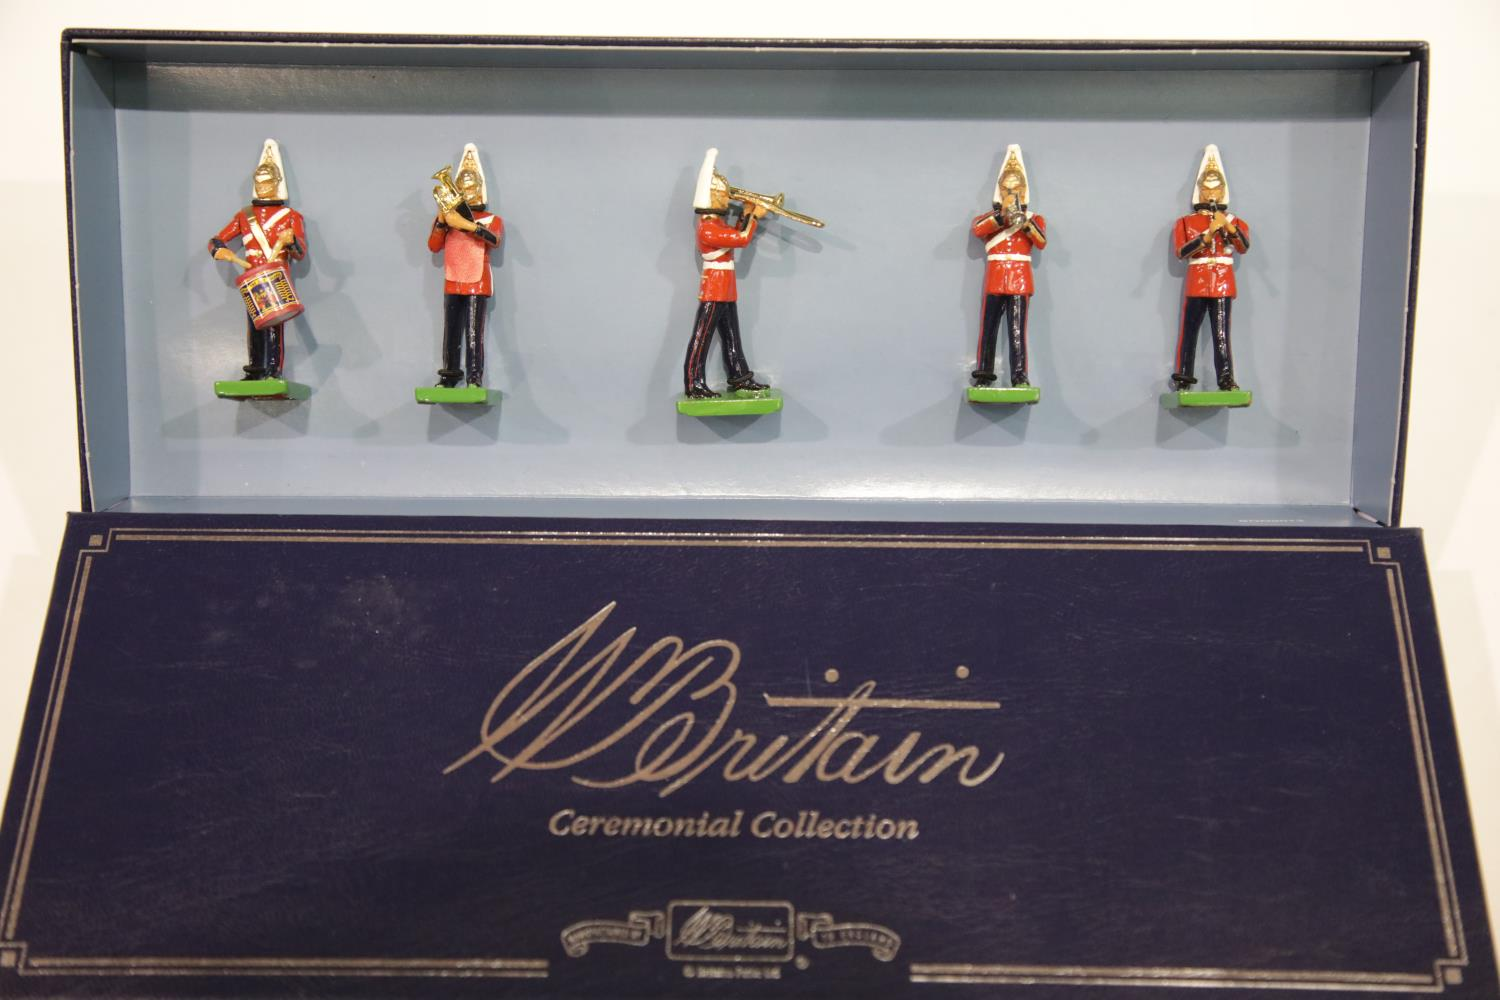 Lot 678 - Britains 00157 Band of The Lifeguards. P&P Group 1 (£14+VAT for the first lot and